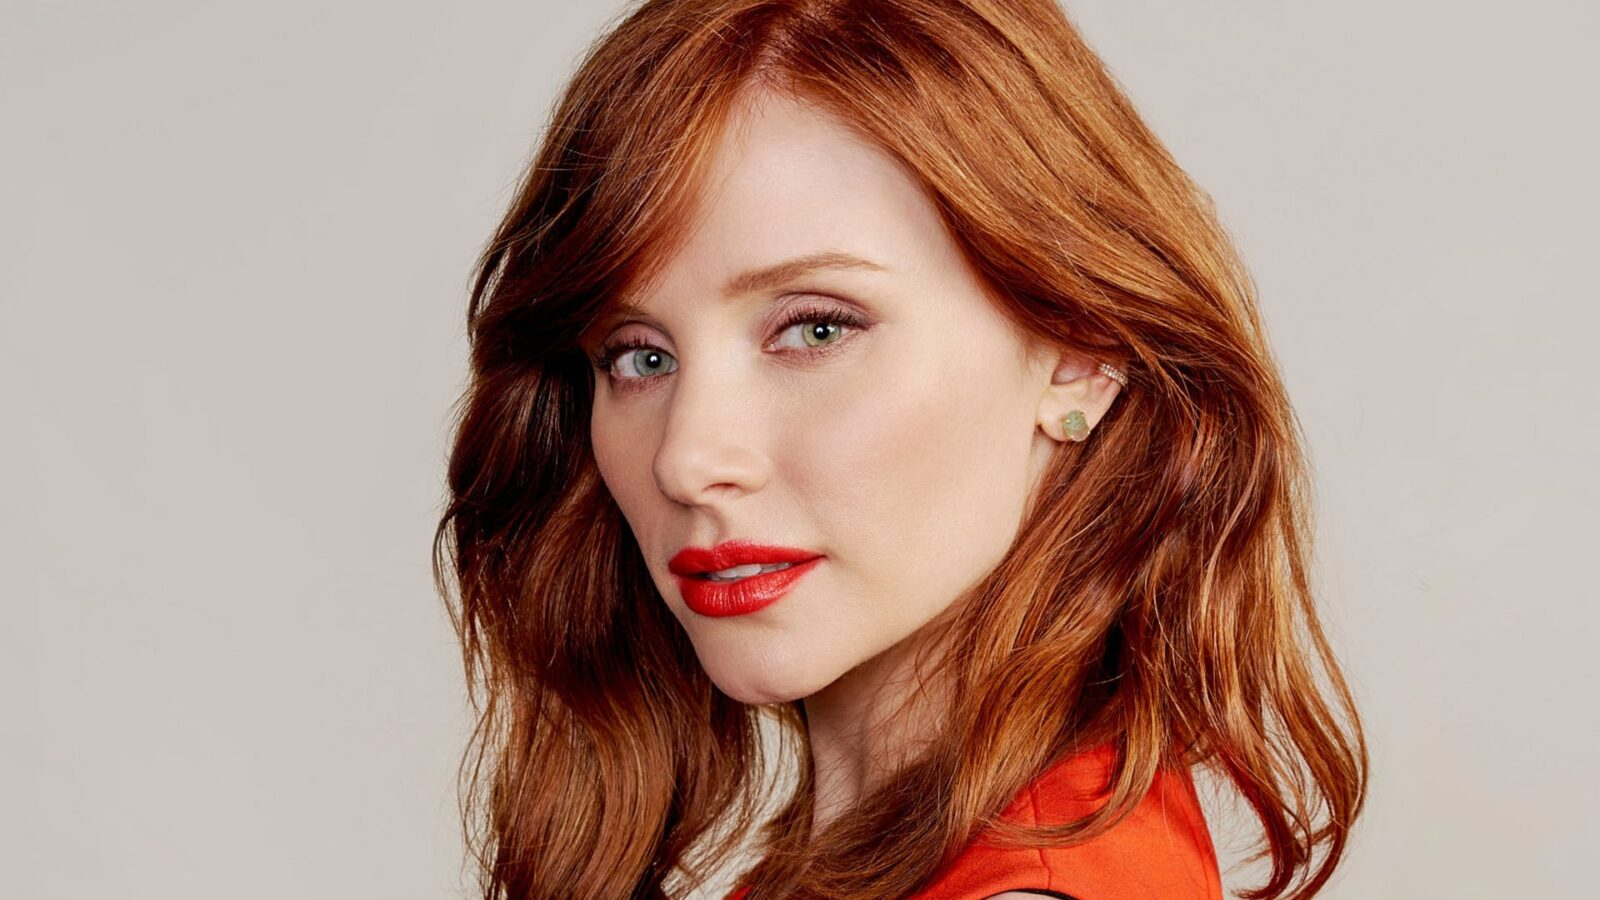 Bryce Dallas Howard computer wallpaper